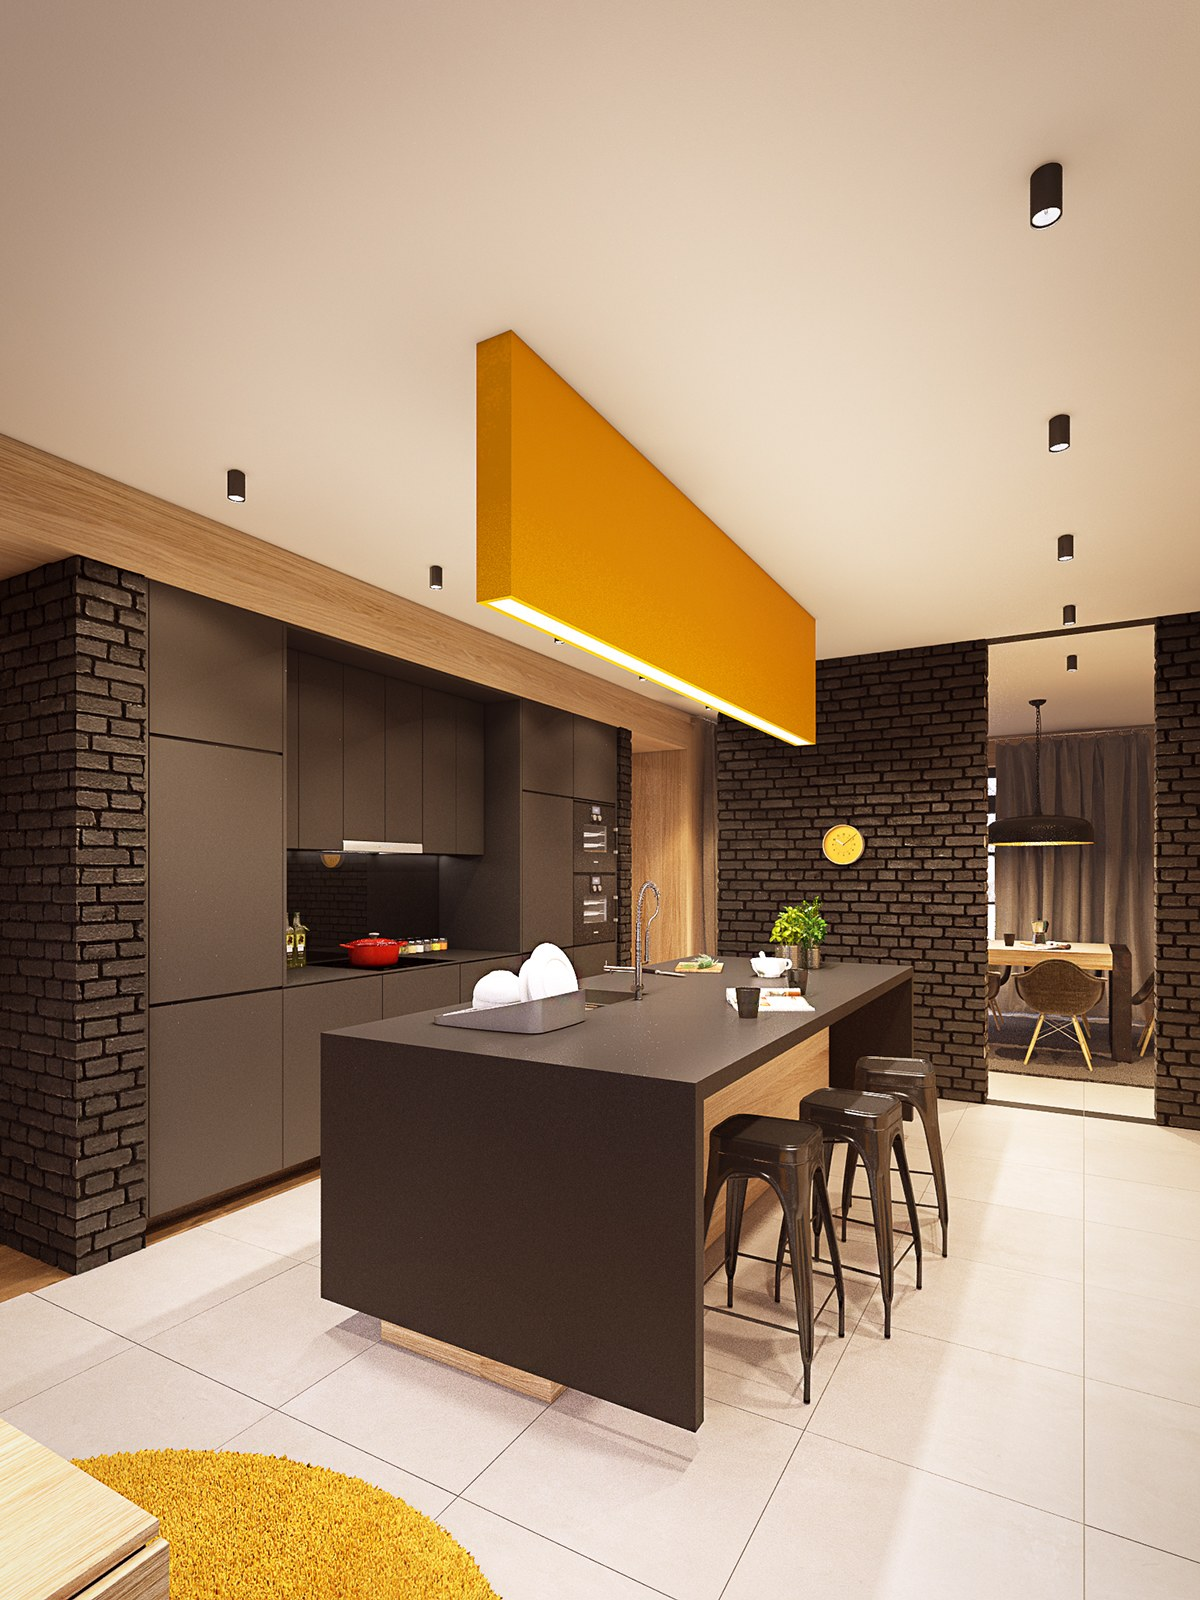 slick-kitchen arrangement